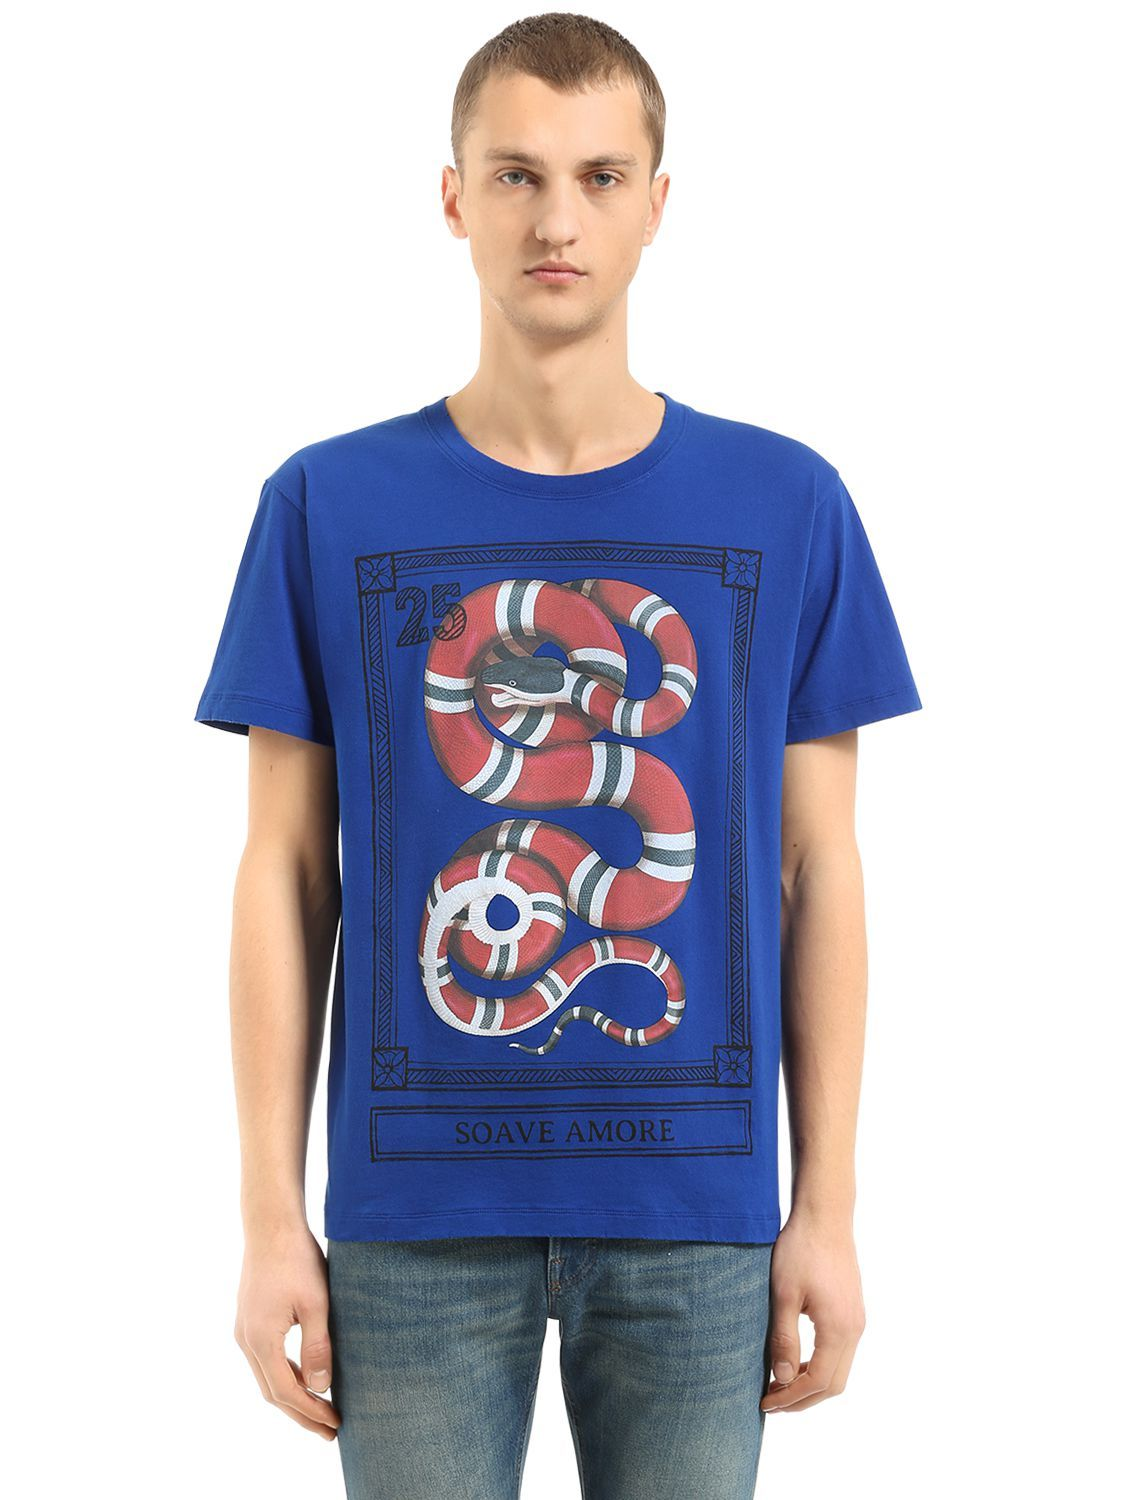 6afc2dc5 GUCCI SNAKE PRINTED COTTON JERSEY T-SHIRT. #gucci #cloth # | Gucci ...